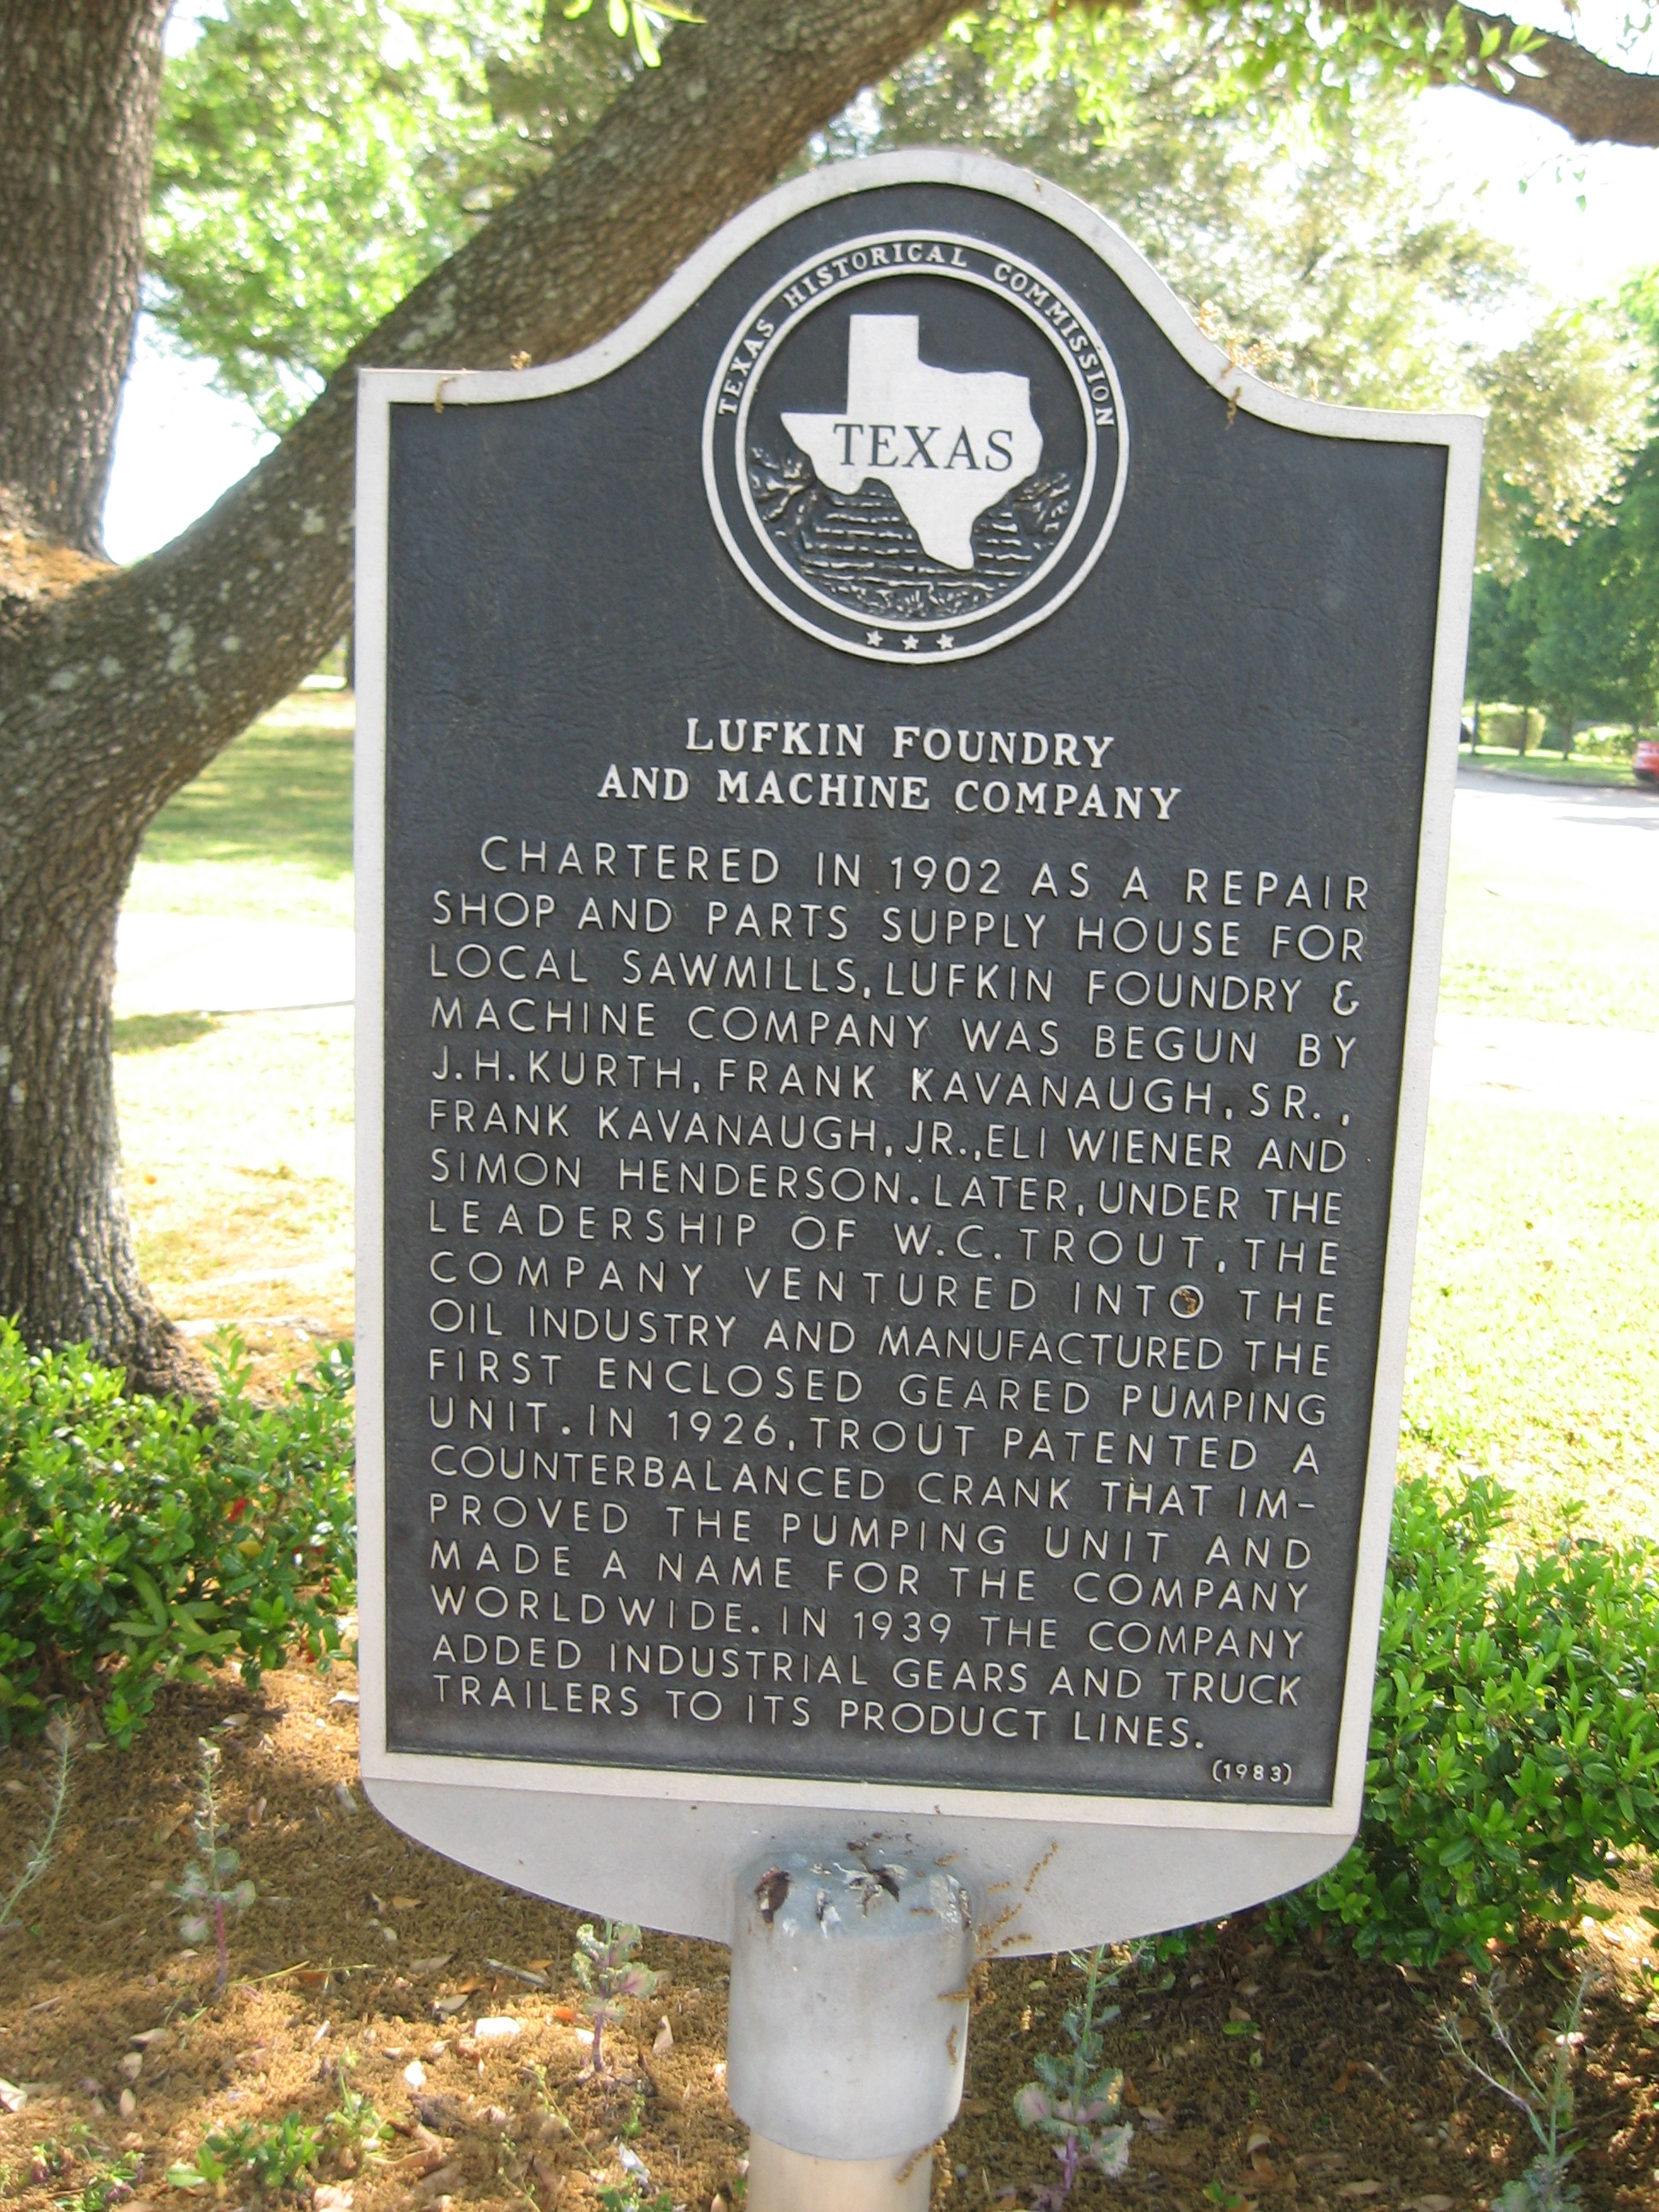 Lufkin Foundry and Machine Company Marker